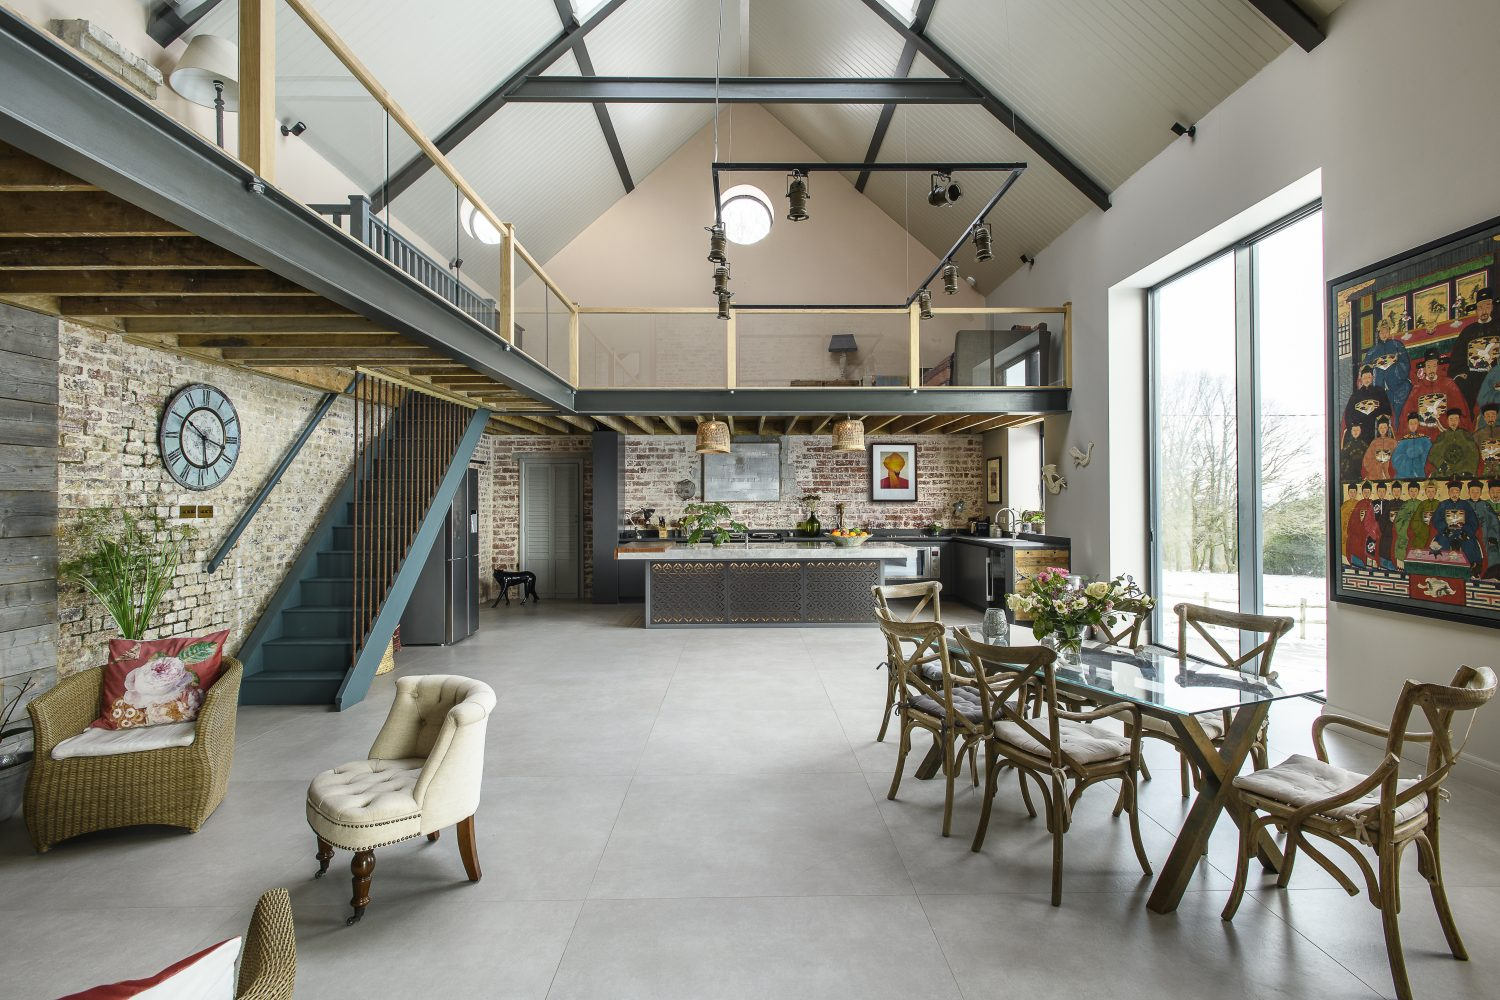 Leading up to the mezzanine, the staircase banisters were made from rebar (the metal rods used to reinforce expanses of concrete), a clever and economical solution suggested by Tom and Dean